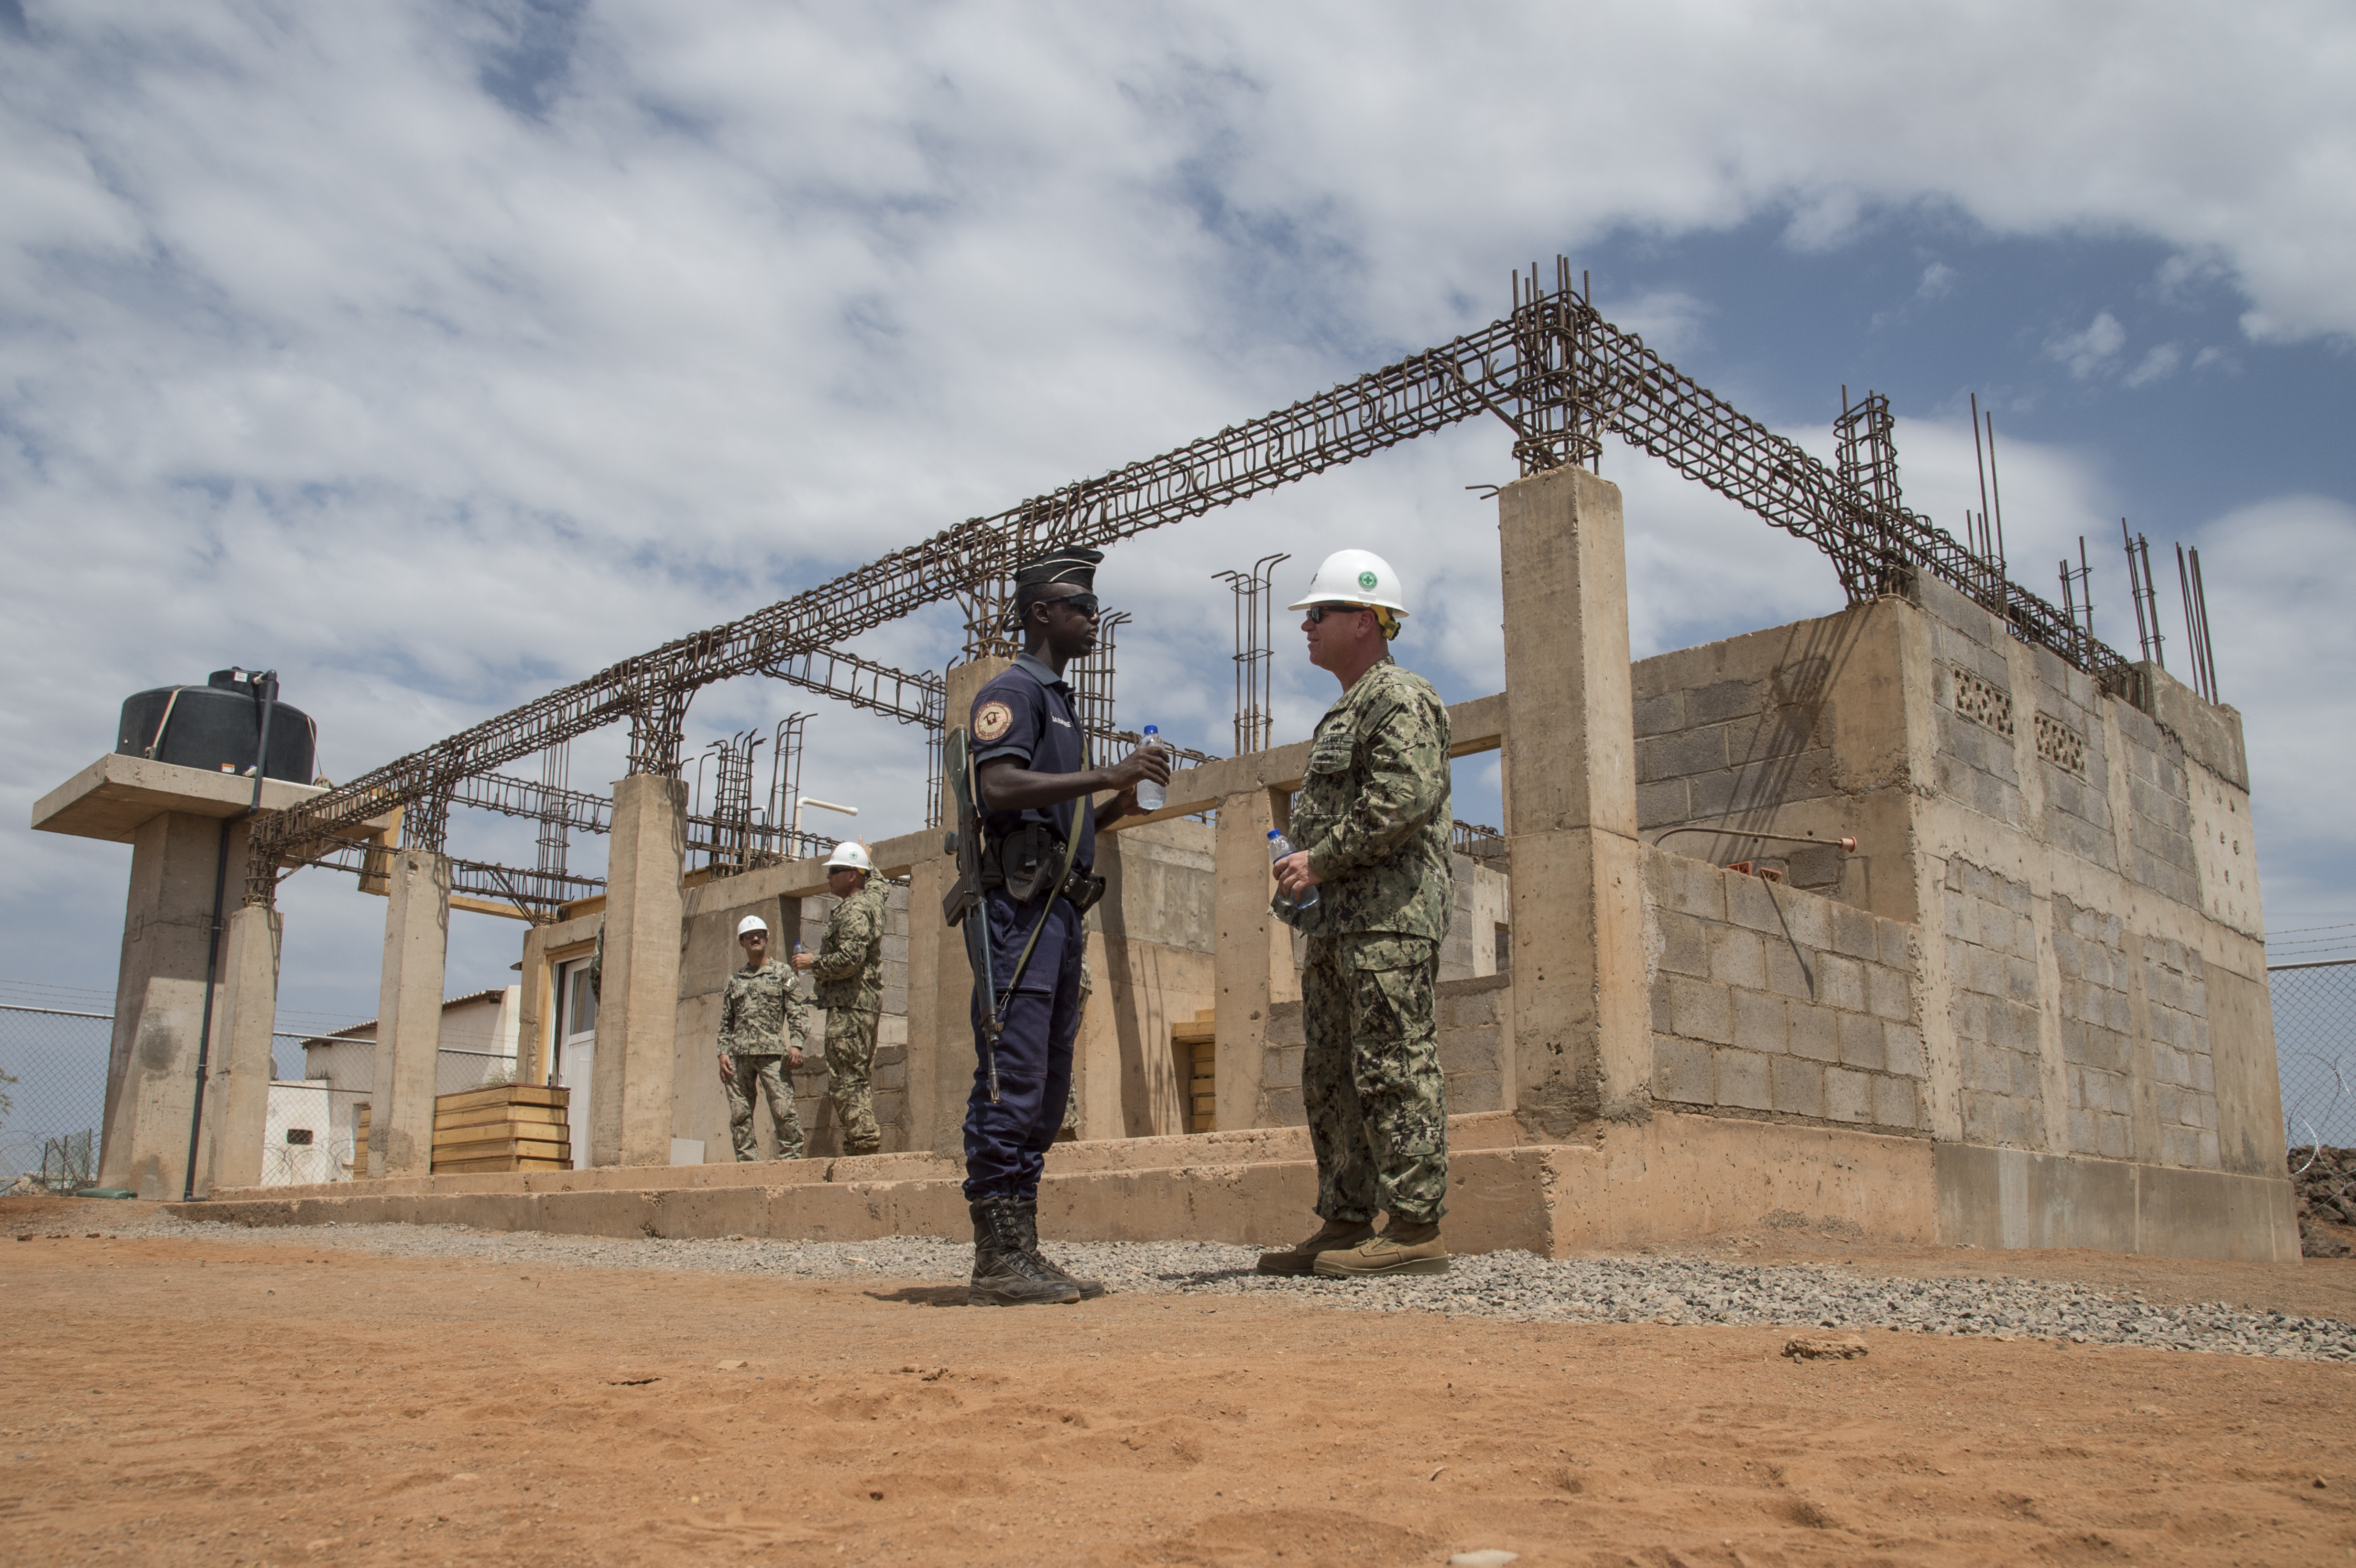 Lt. Cdr. Jason Ward, Commander of Naval Mobile Construction Battalion ONE (NMCB 1) assigned to Combined Joint Task Force-Horn of Africa speaks with the Djiboutian Gendarmerie securing the construction site at Ali Oune, Djibouti, where they are building a medical center, Aug. 17, 2017. The project was started by NMCB 1 and is being relieved by NMCB 133 who will continue working on the project. (U.S. Air National Guard photo by Tech. Sgt. Joe Harwood)